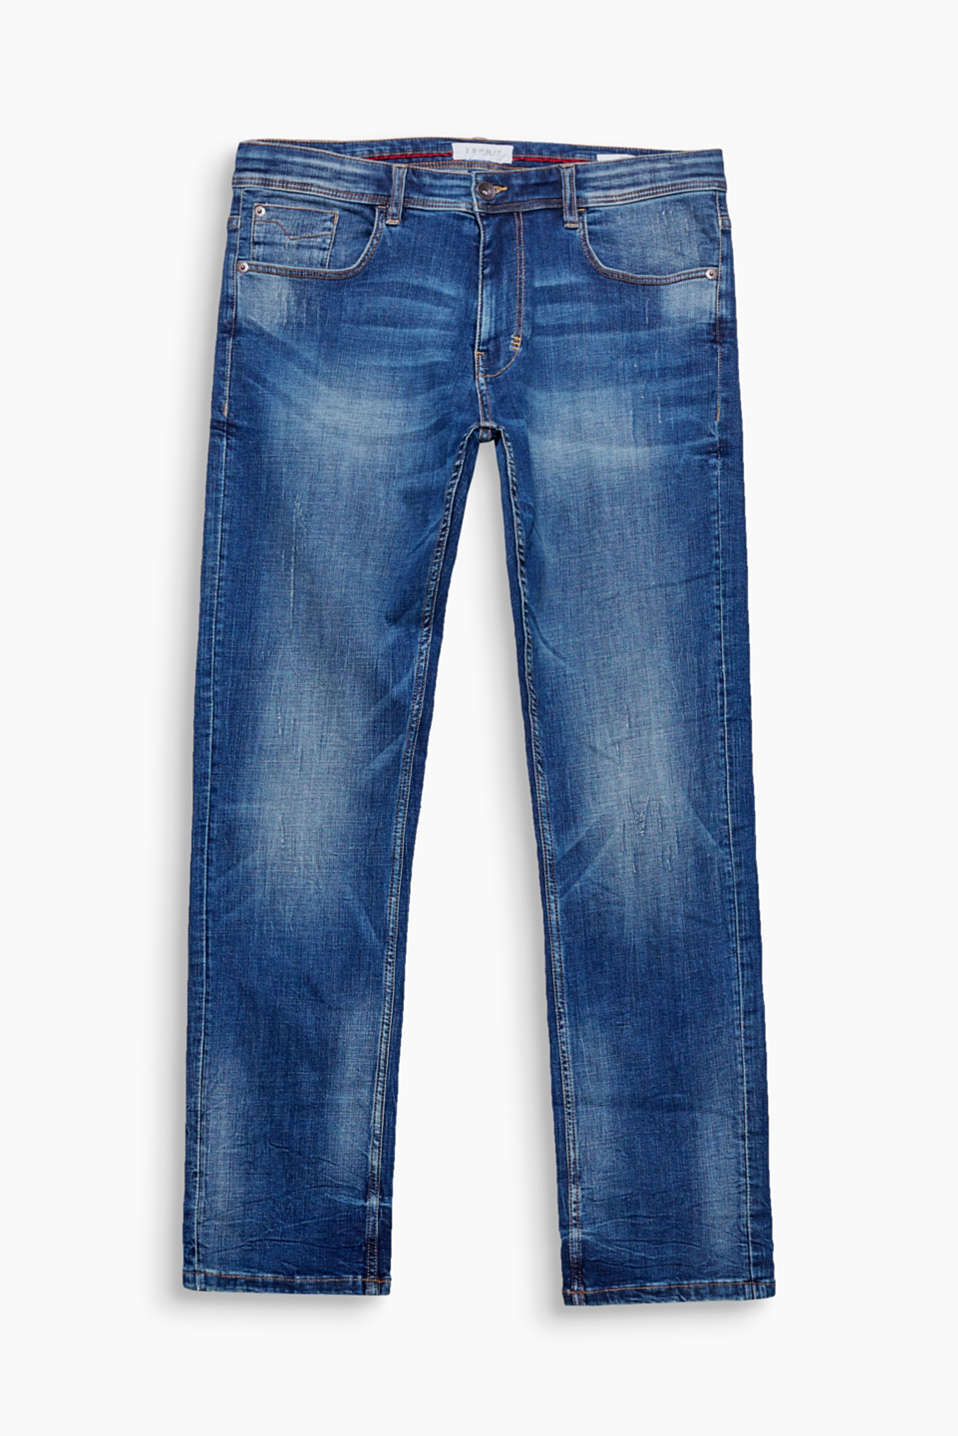 We love denim! These five-pocket jeans come in an authentic vintage wash.